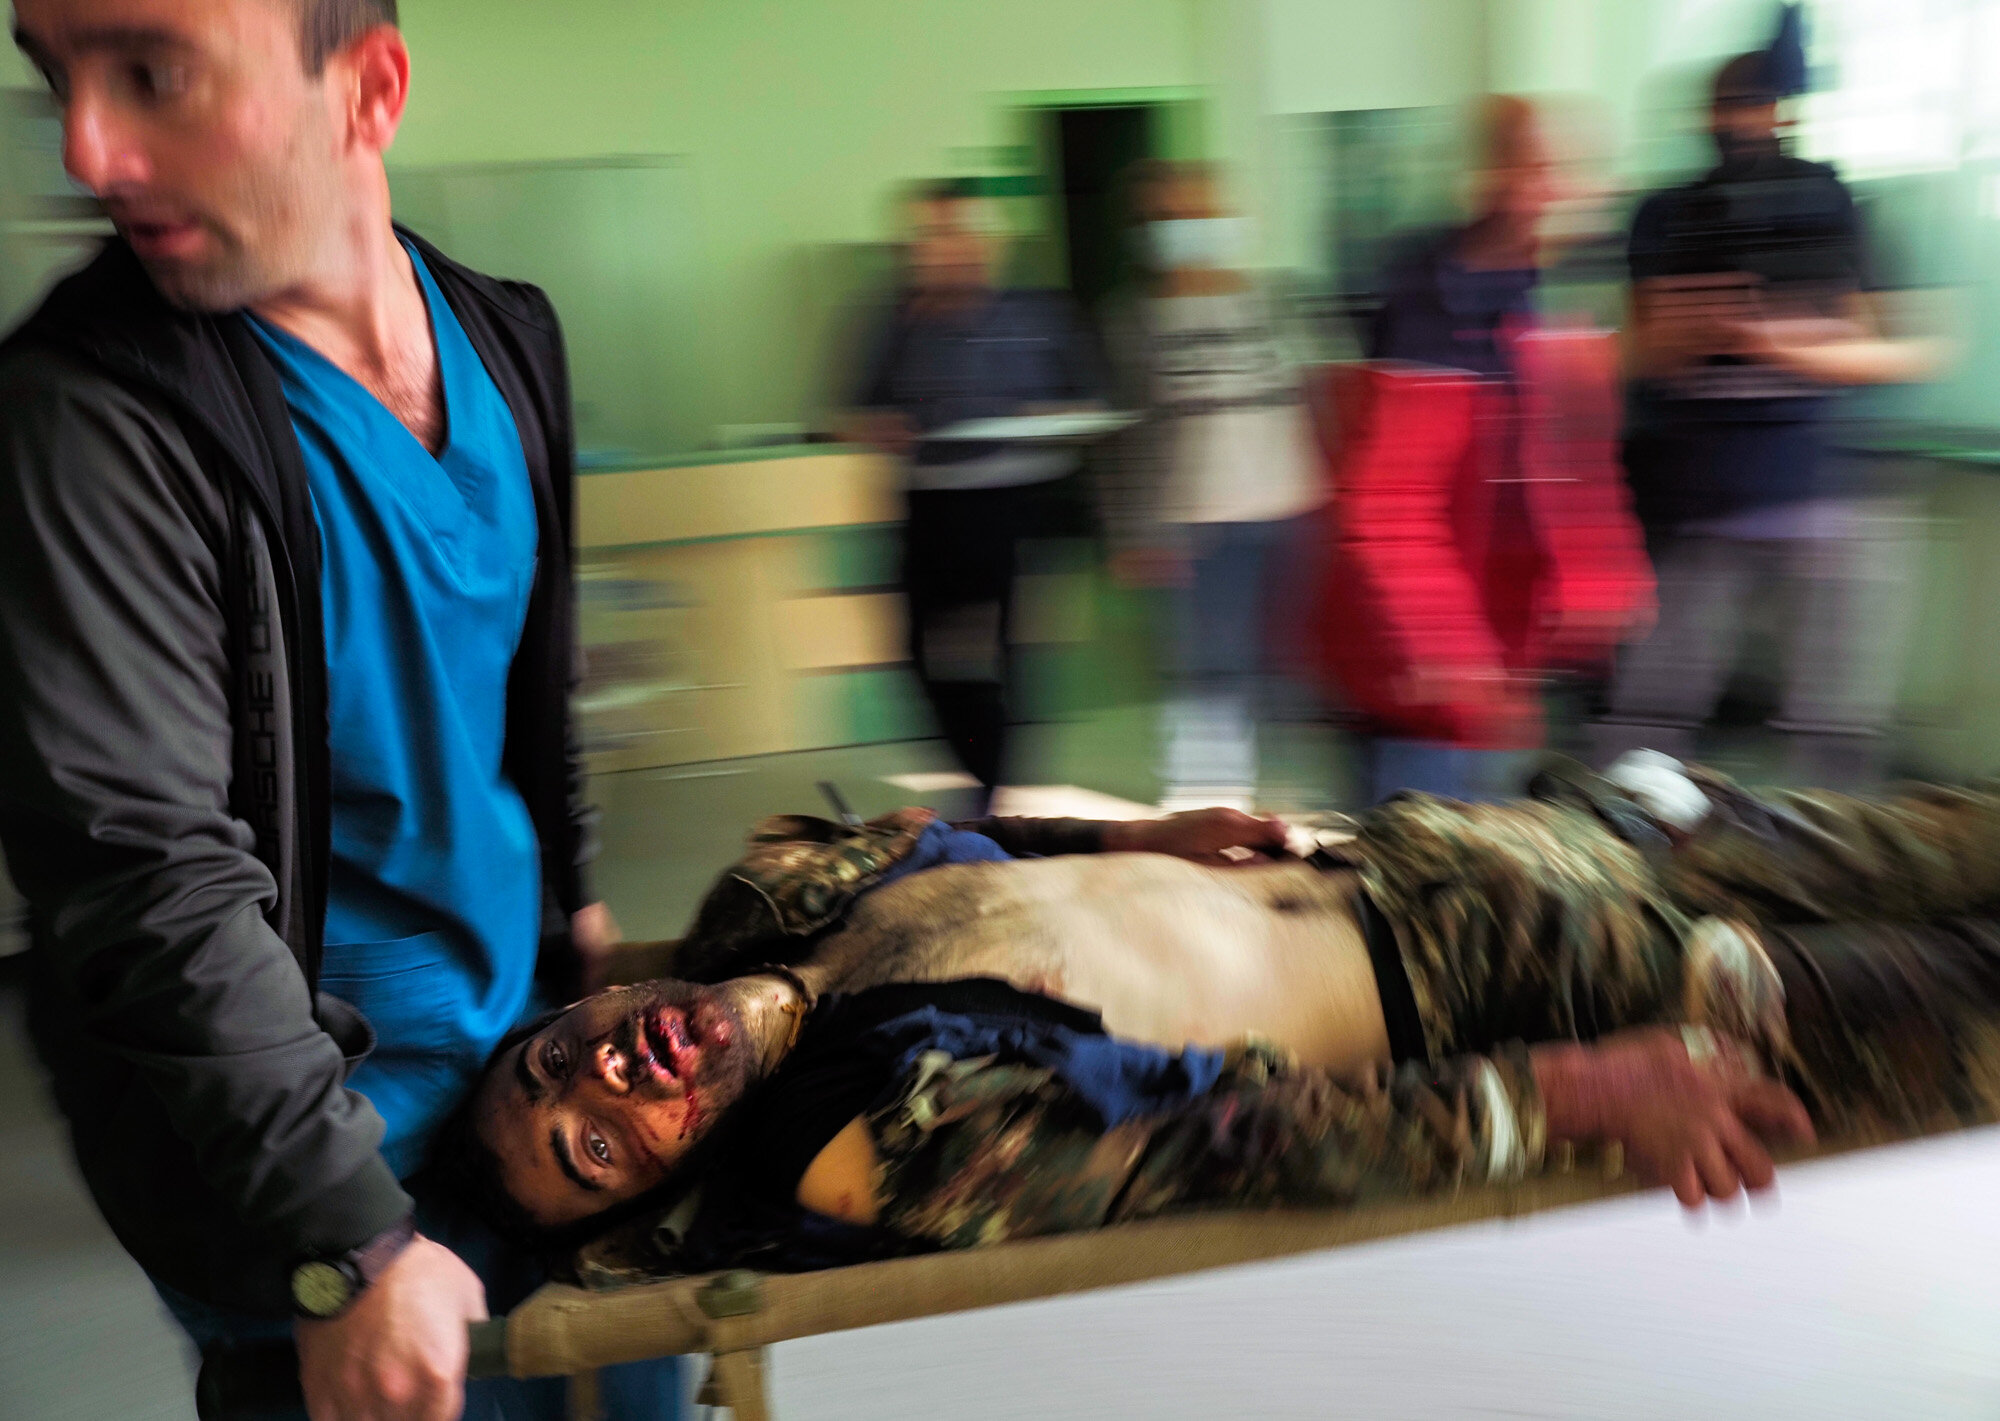 Medical workers transport a wounded man in a hospital during shelling by Azerbaijan's artillery in Stepanakert, in the separatist region of Nagorno-Karabakh, on Oct. 28, 2020. (AP Photo/Dmitry Lovetsky)